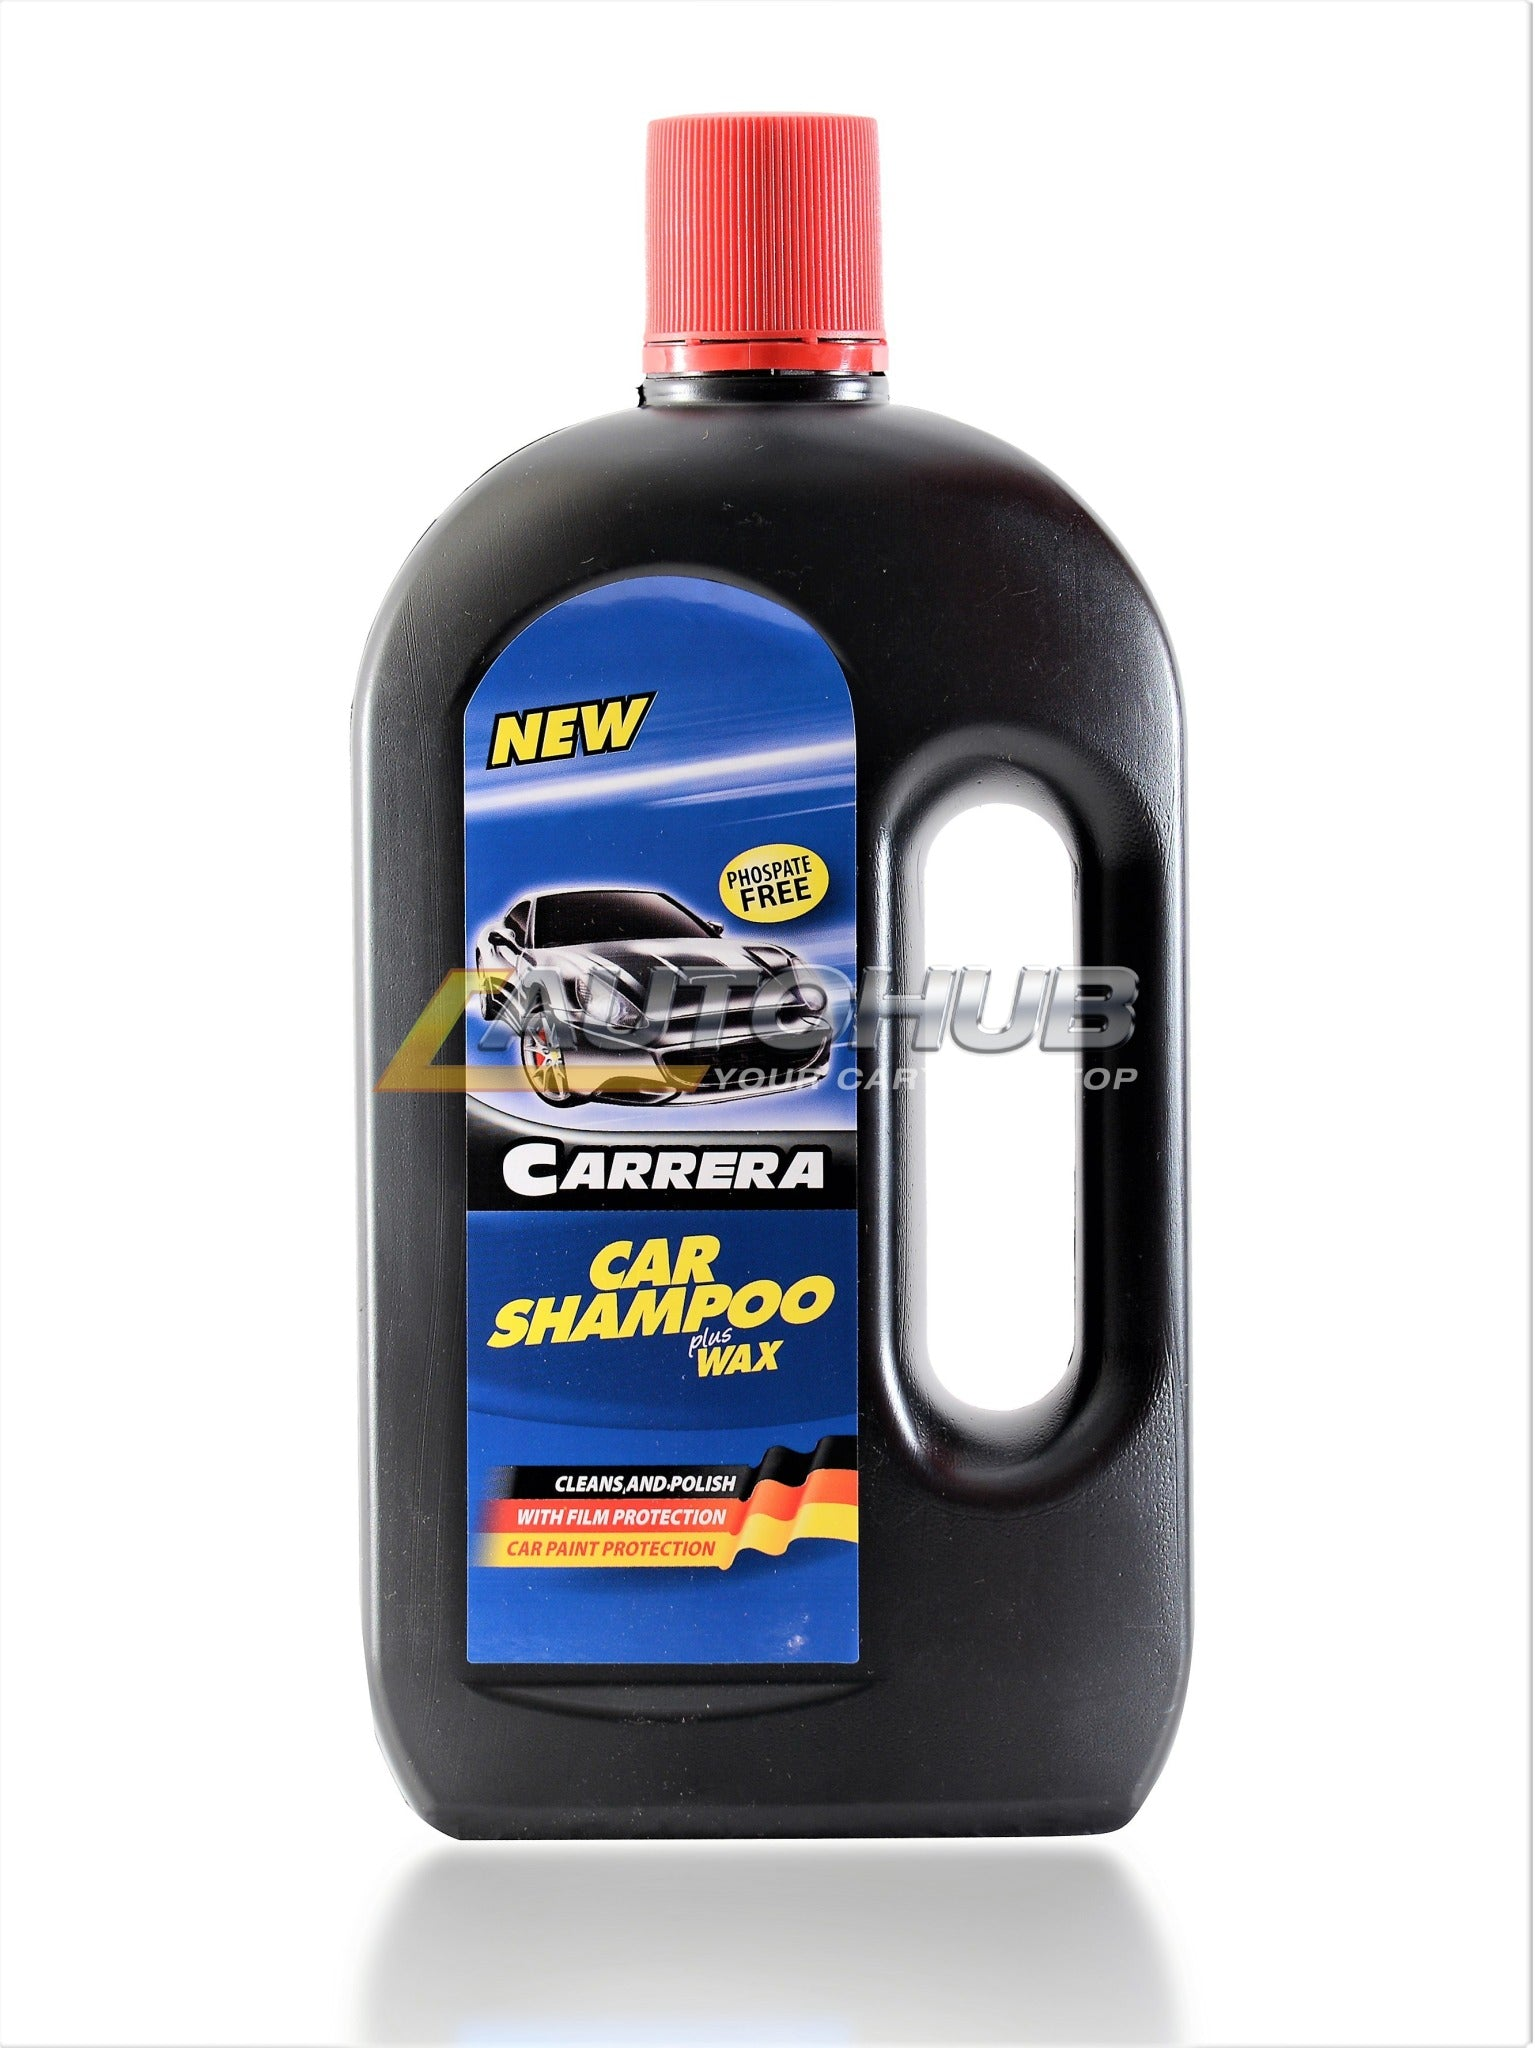 CARRERA Shampoo Plus Wax Bottle 650ml